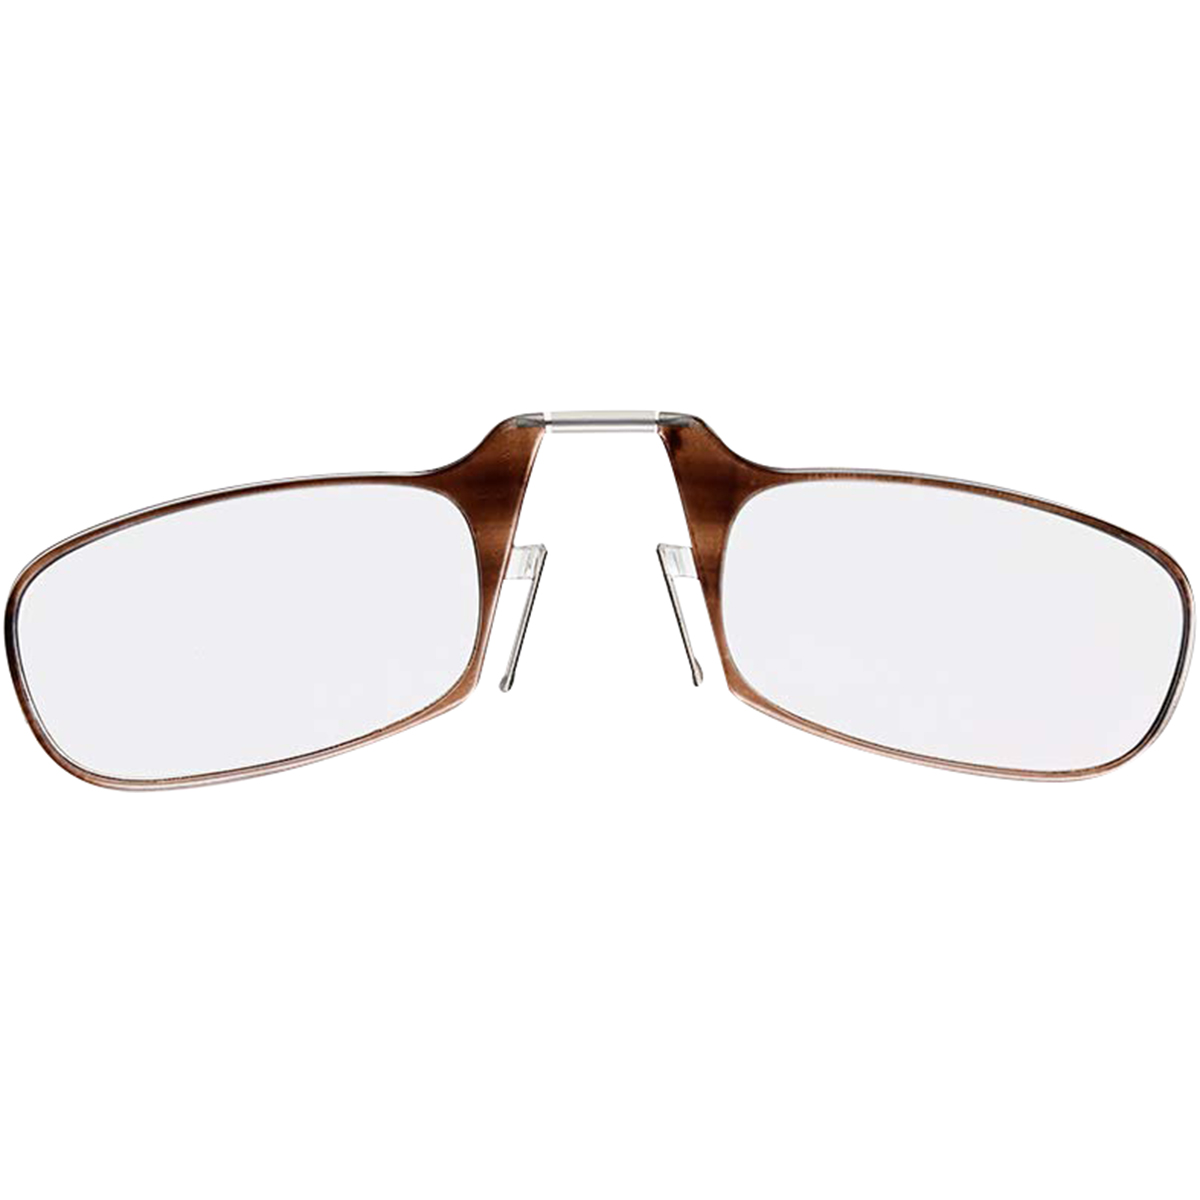 ThinOptics-Secure-Fit-Armless-Ultralight-Reading-Glasses-with-Universal-Pod-Case thumbnail 18